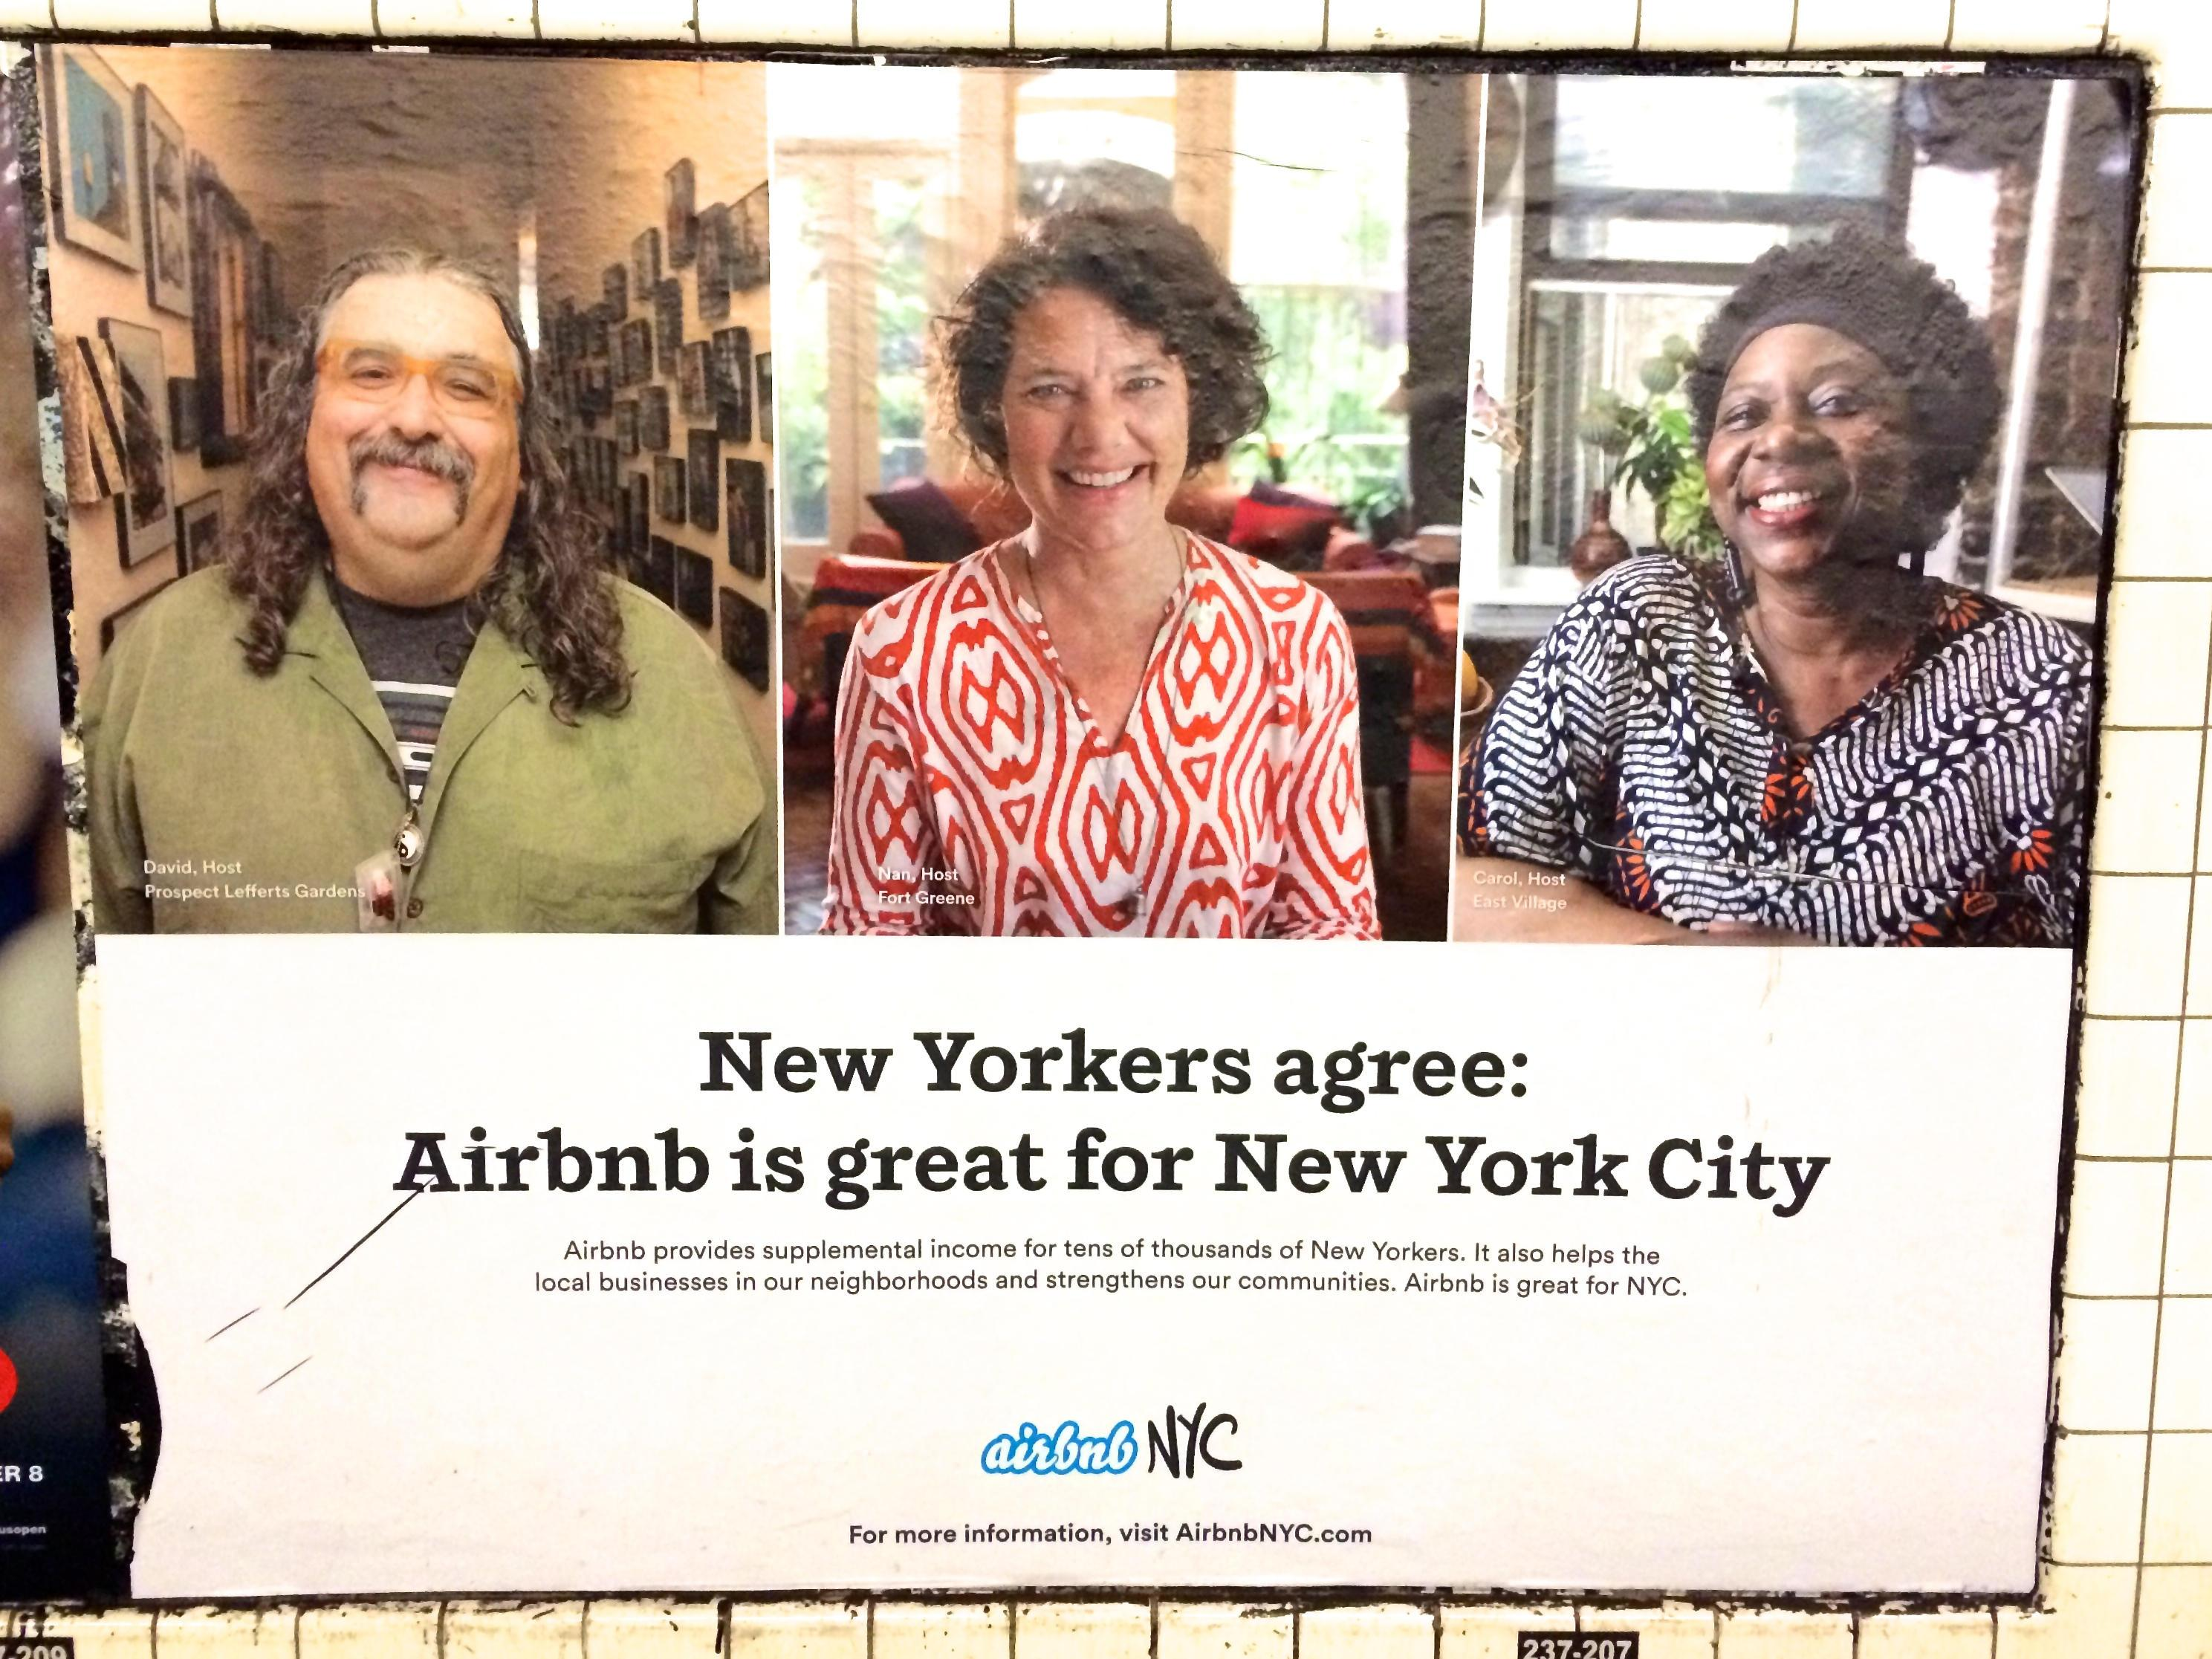 NYC judge said to order Airbnb host to stop 'profiteering' off rental